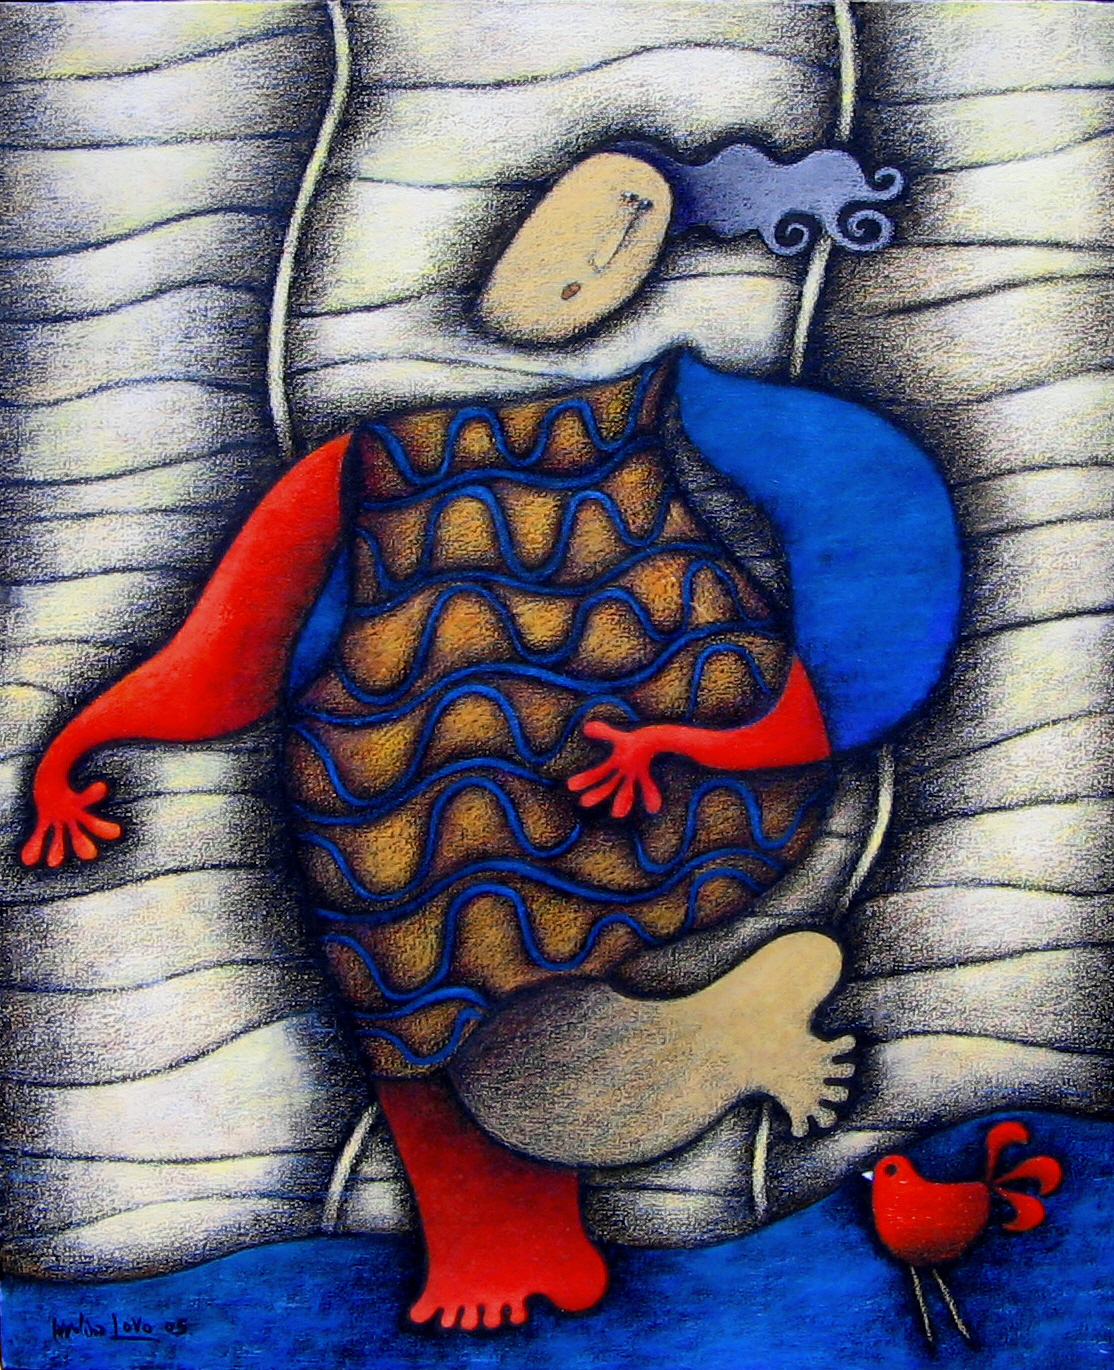 Paz y amor, 2005 (Love and peace)